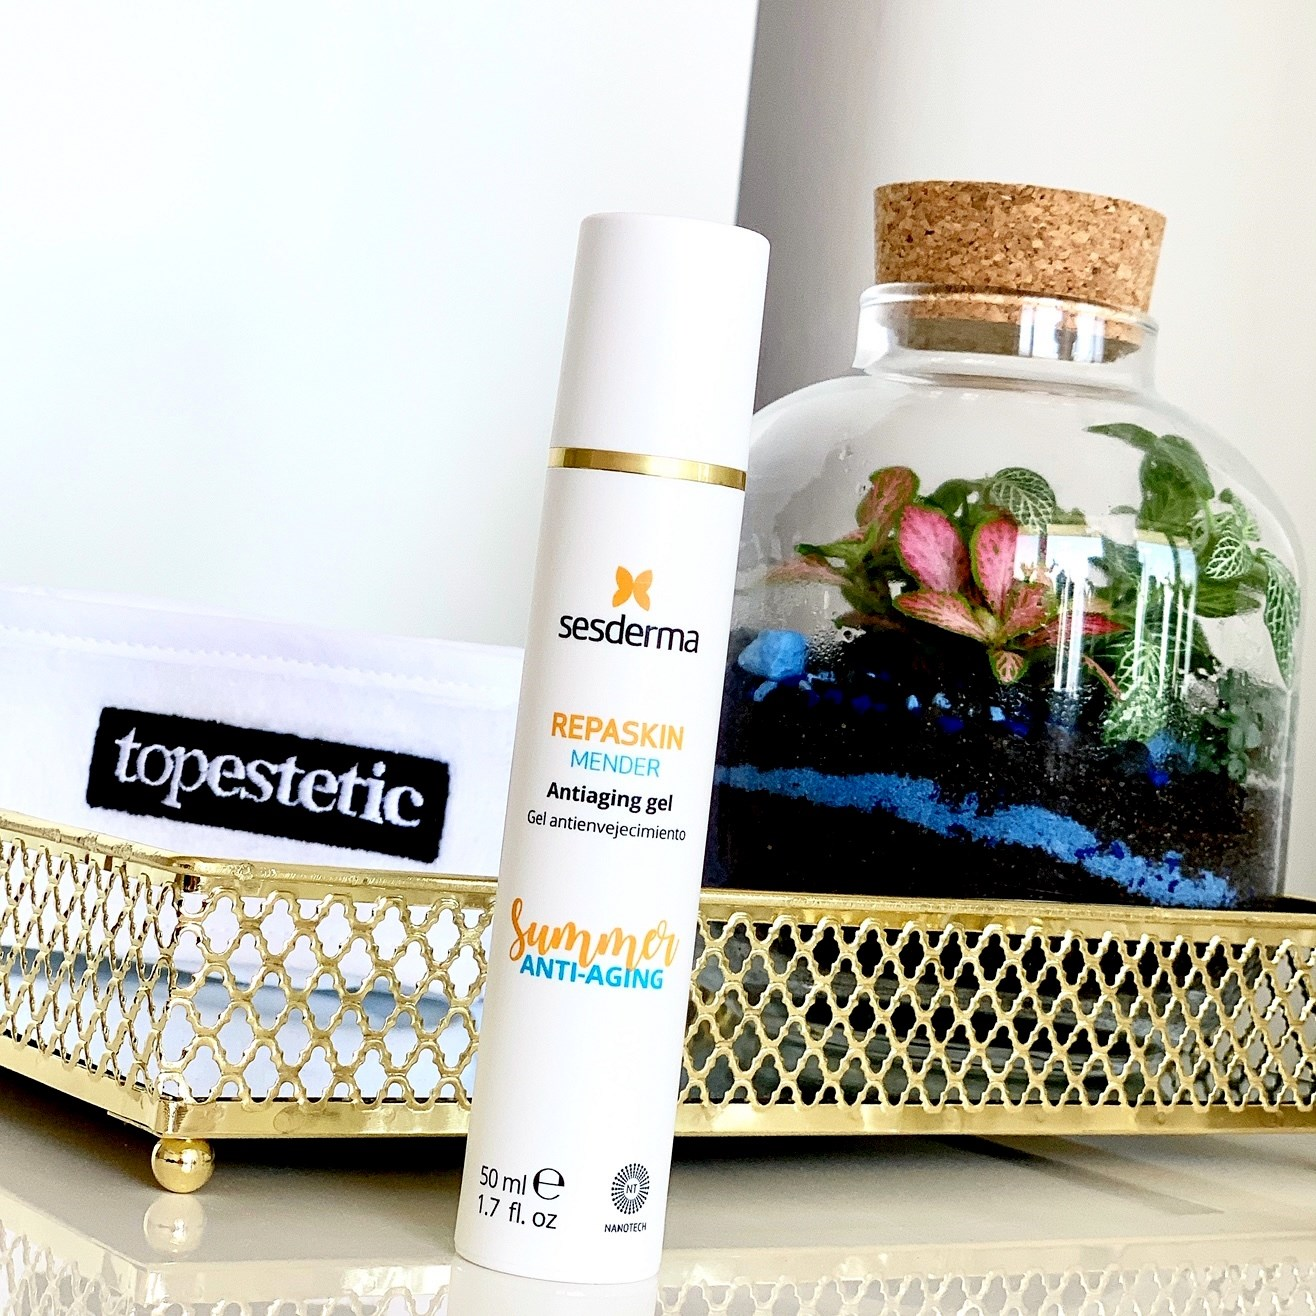 Sesderma Repaskin Mender Antiaging Gel blog